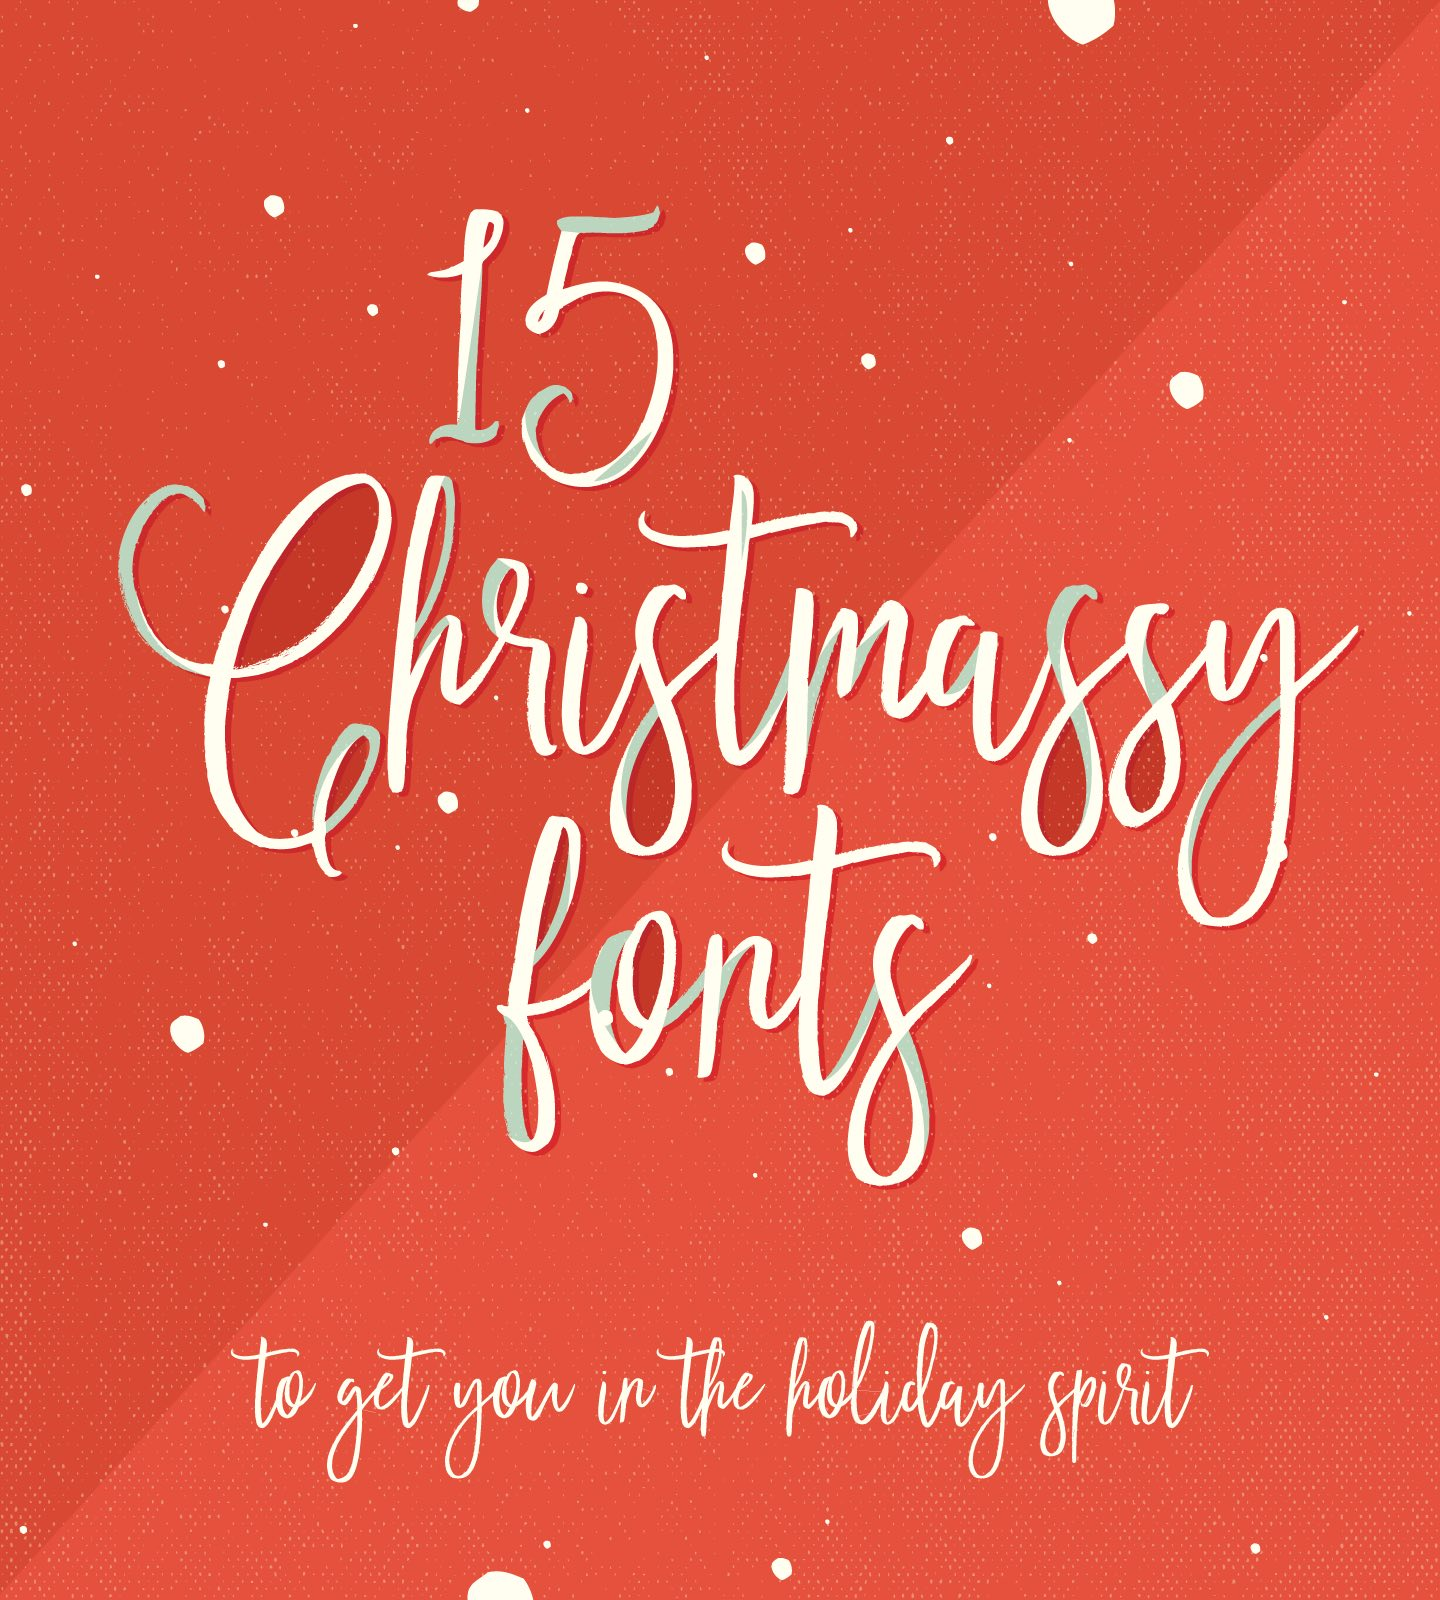 15 Christmassy Fonts To Get You In The Holiday Spirit | YouWorkForThem